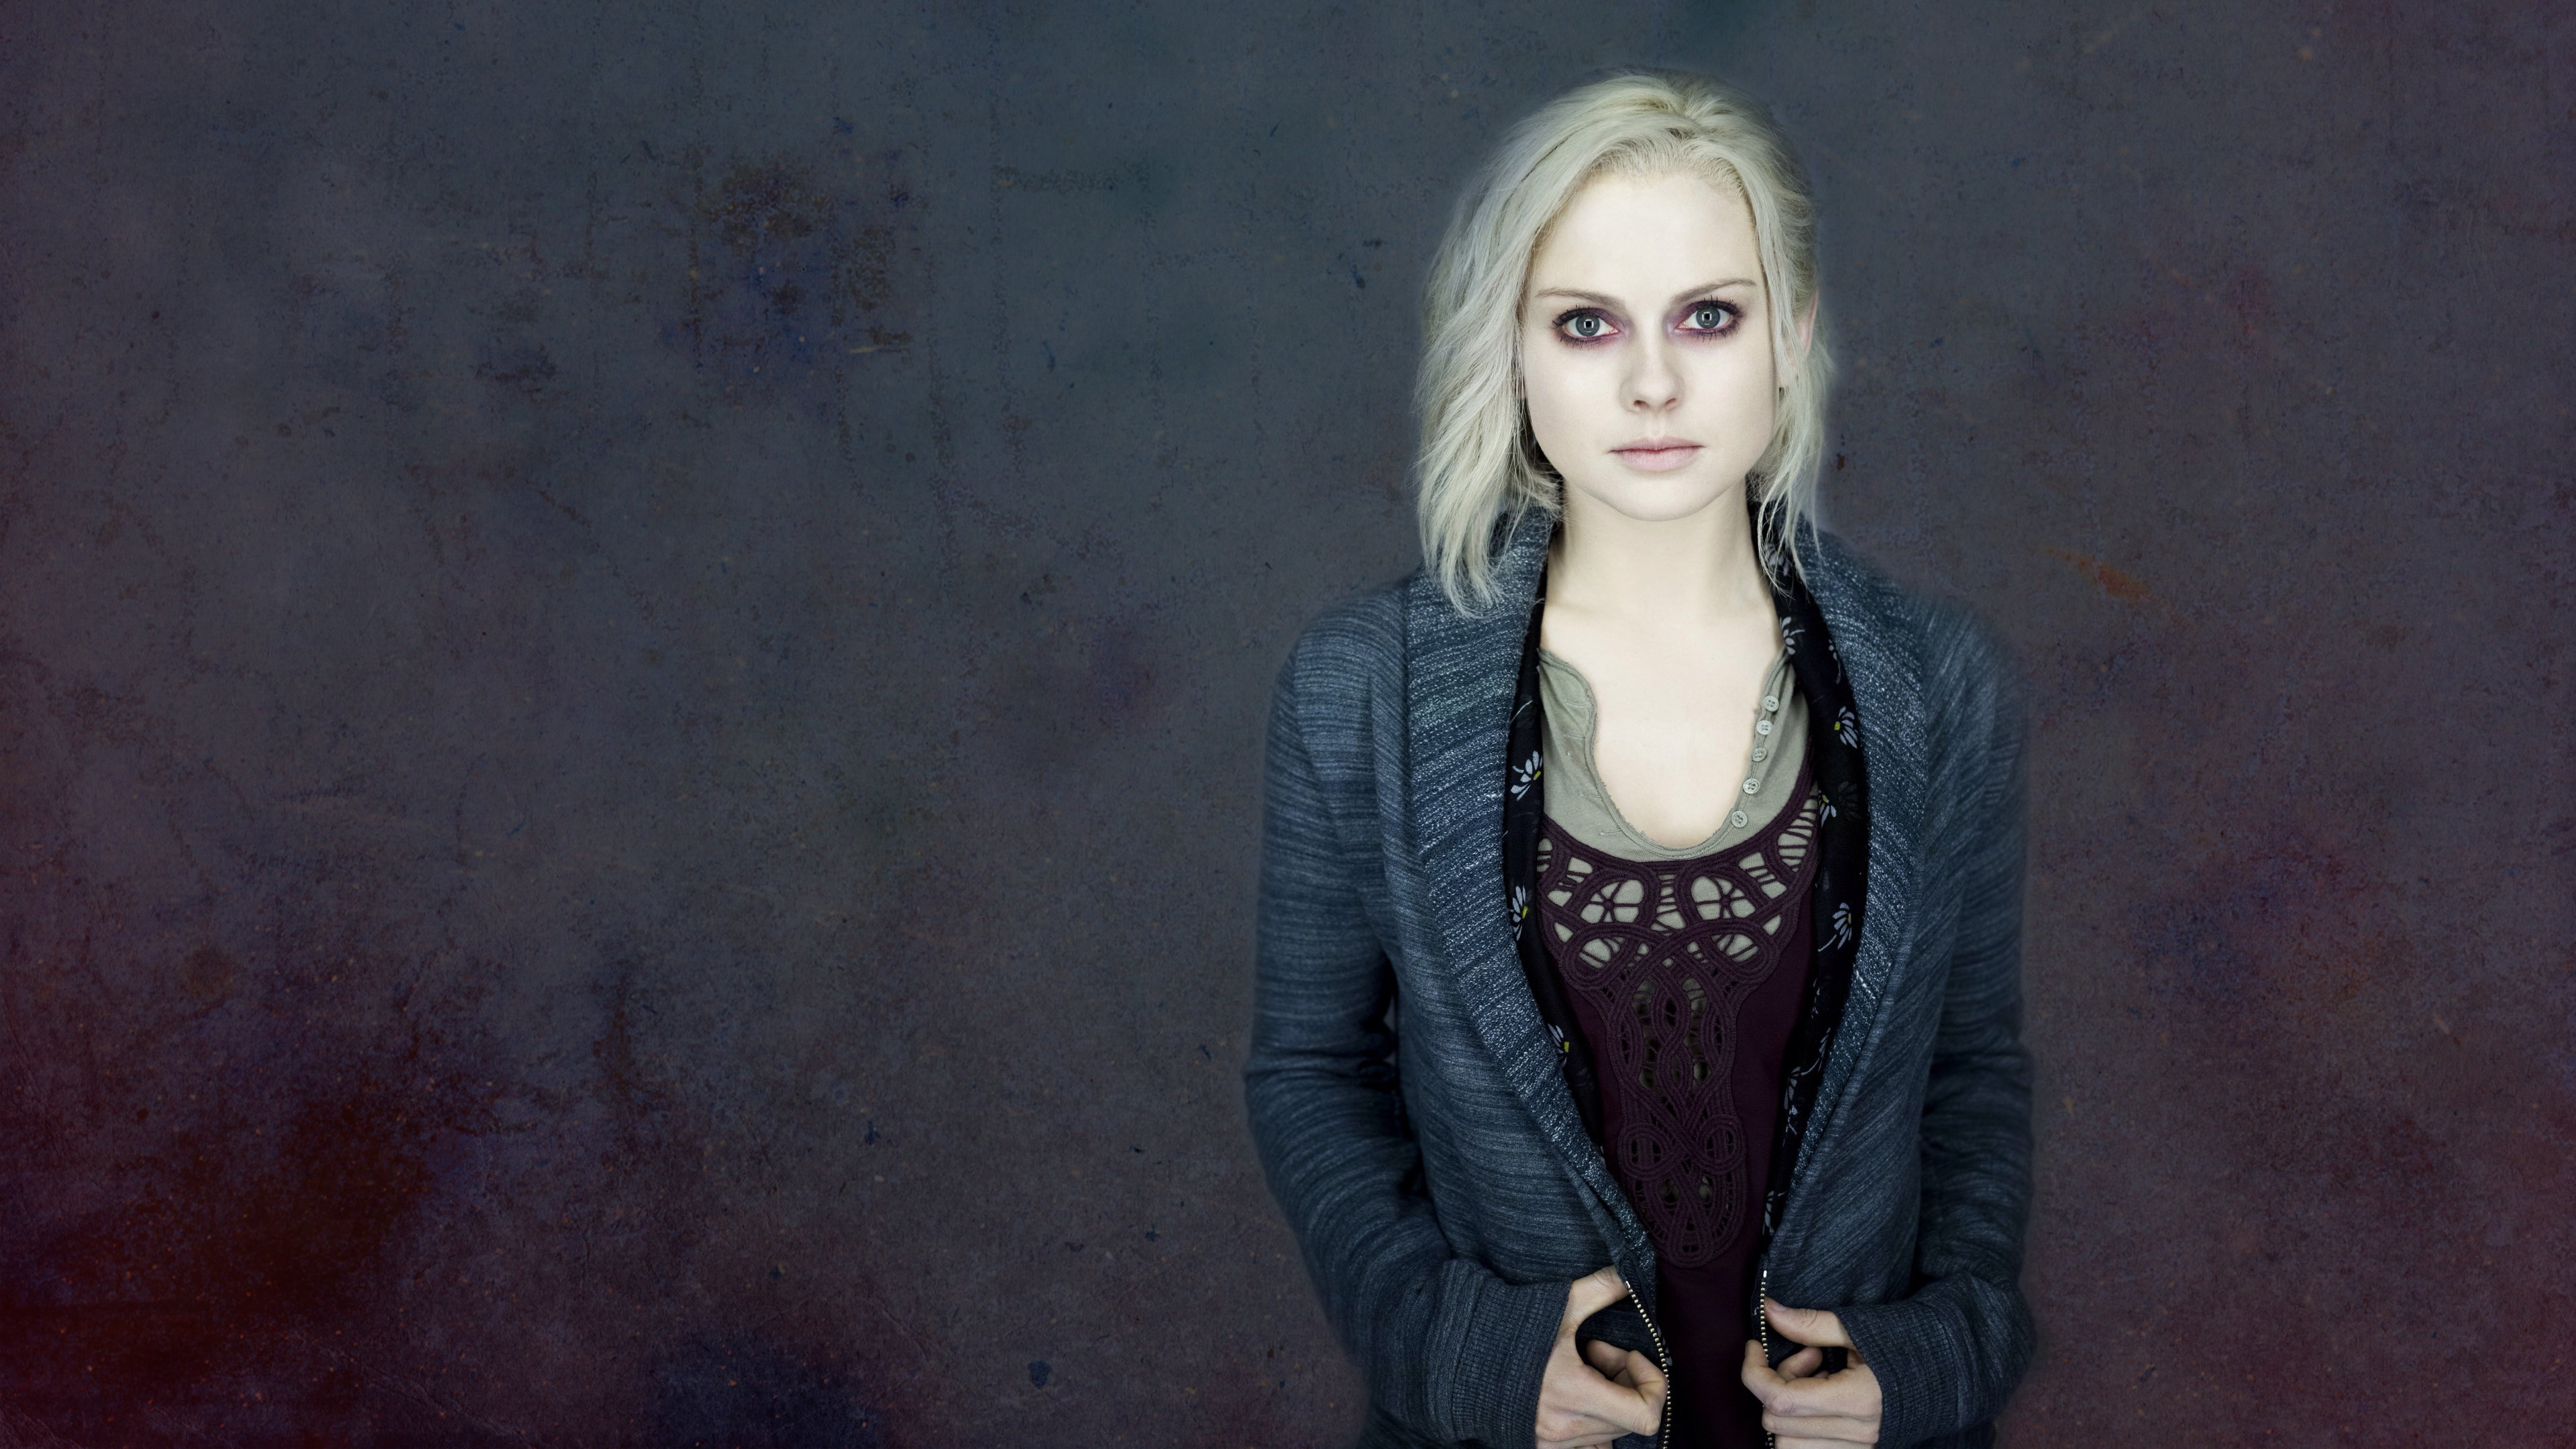 3840x2160 - Rose McIver Wallpapers 5